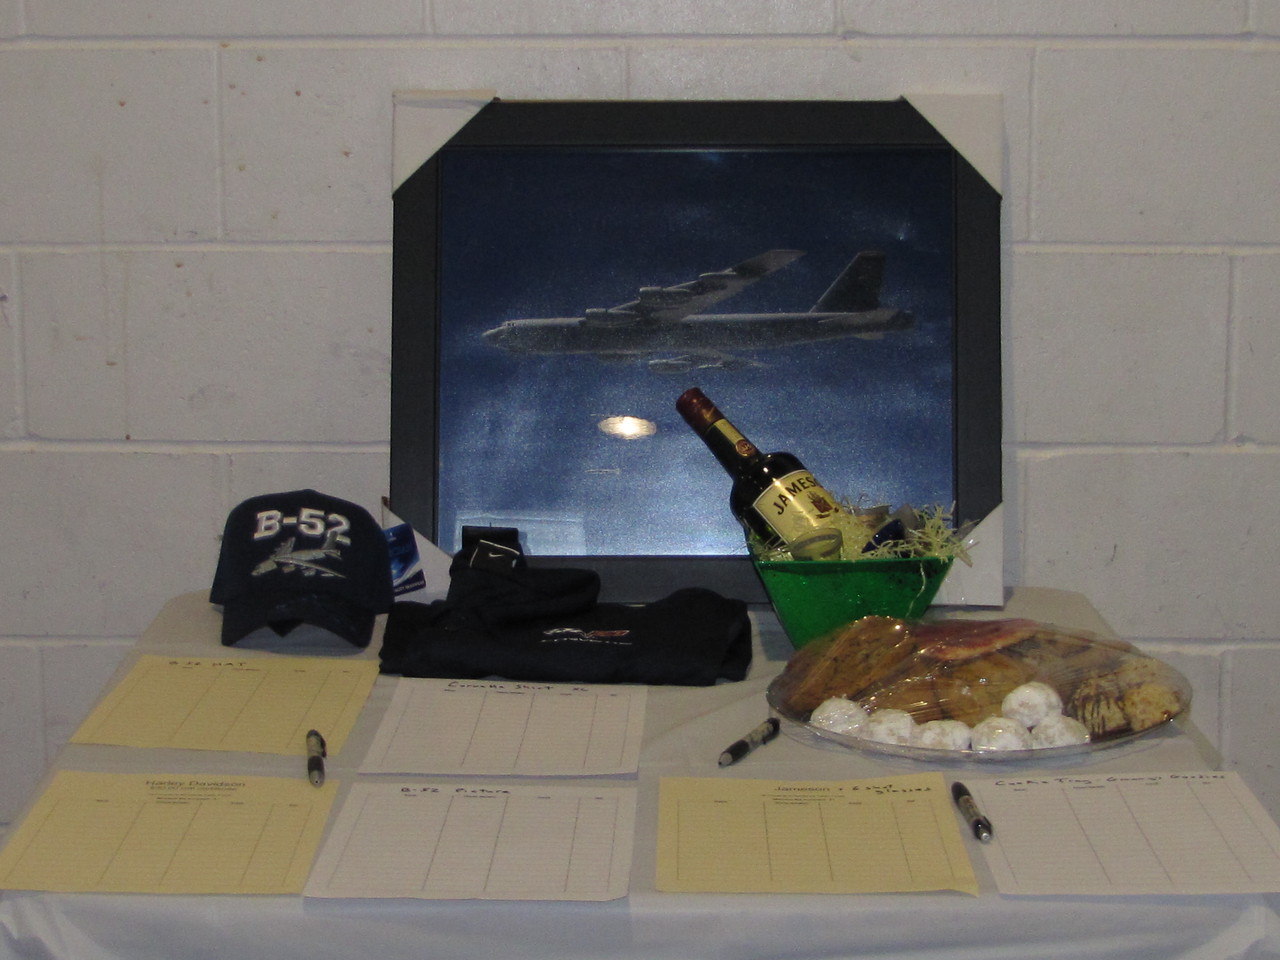 The favorite things table included a B-52 hat and picture, bottle of Jameson with shot glasses, plate of cookies, many golf certificates, a Harley Davidson gift certificate and a Corvette golf shirt.